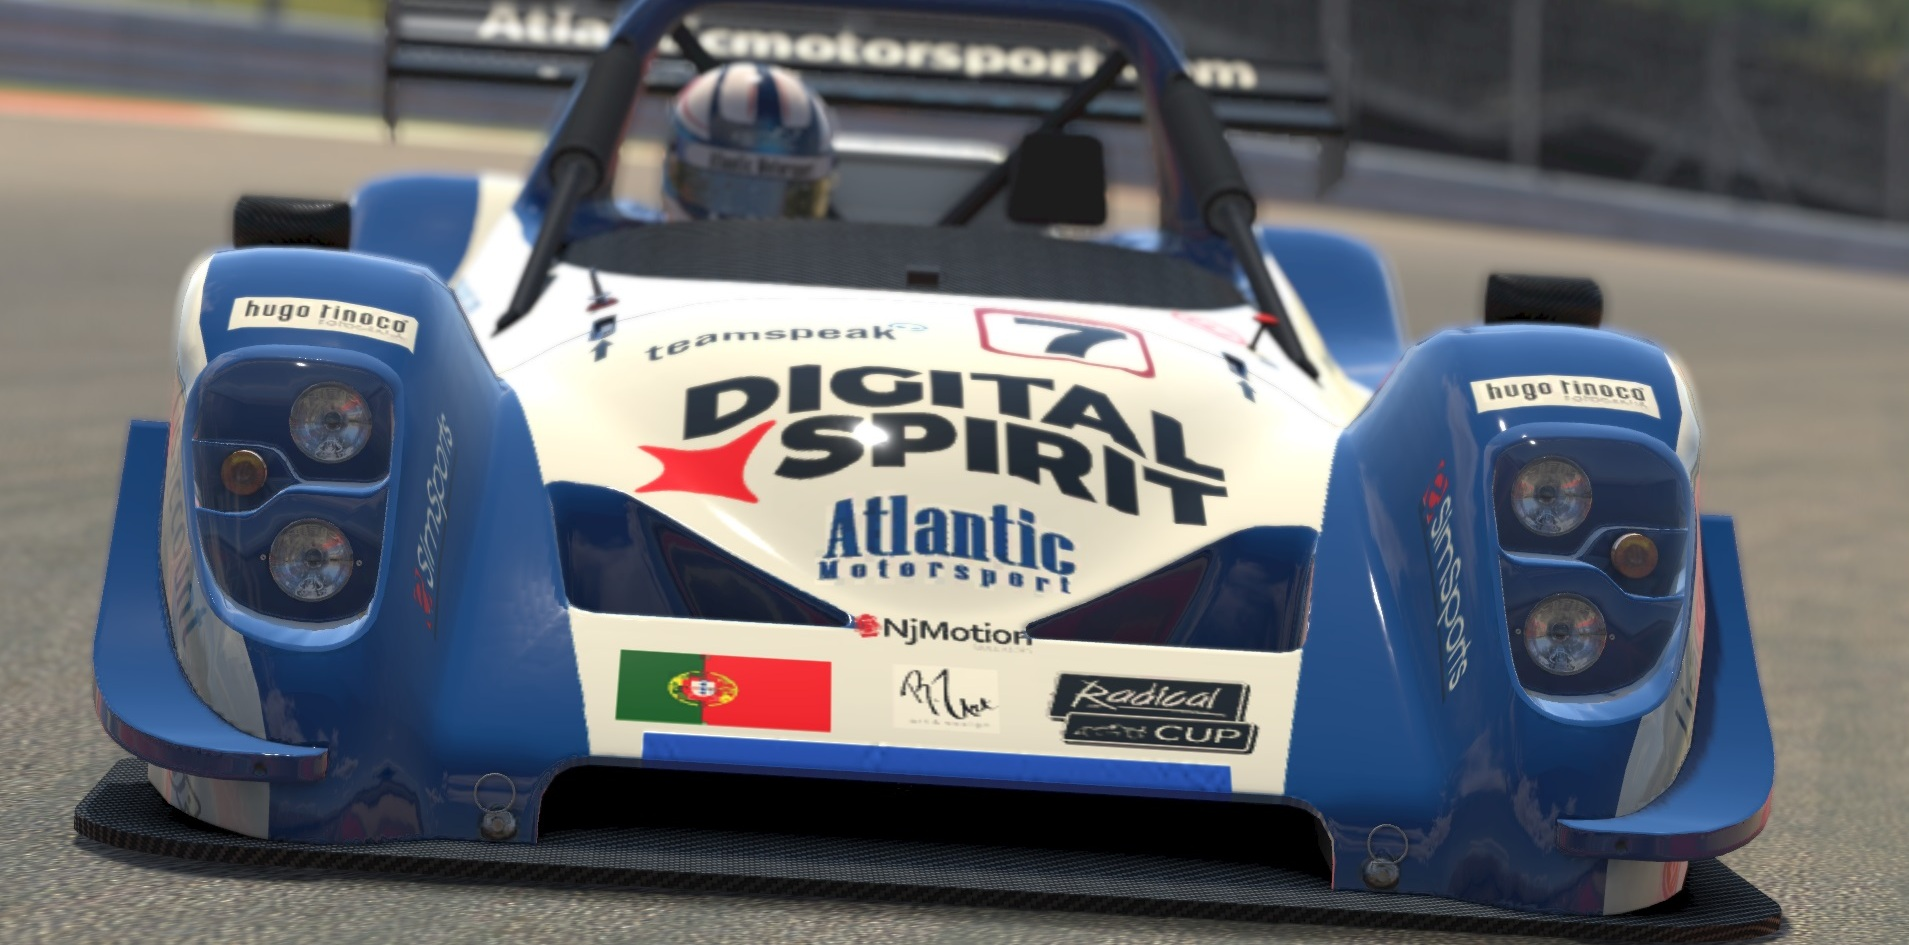 Atlantic Motorsport presents the new Radical SR8 for iRacing